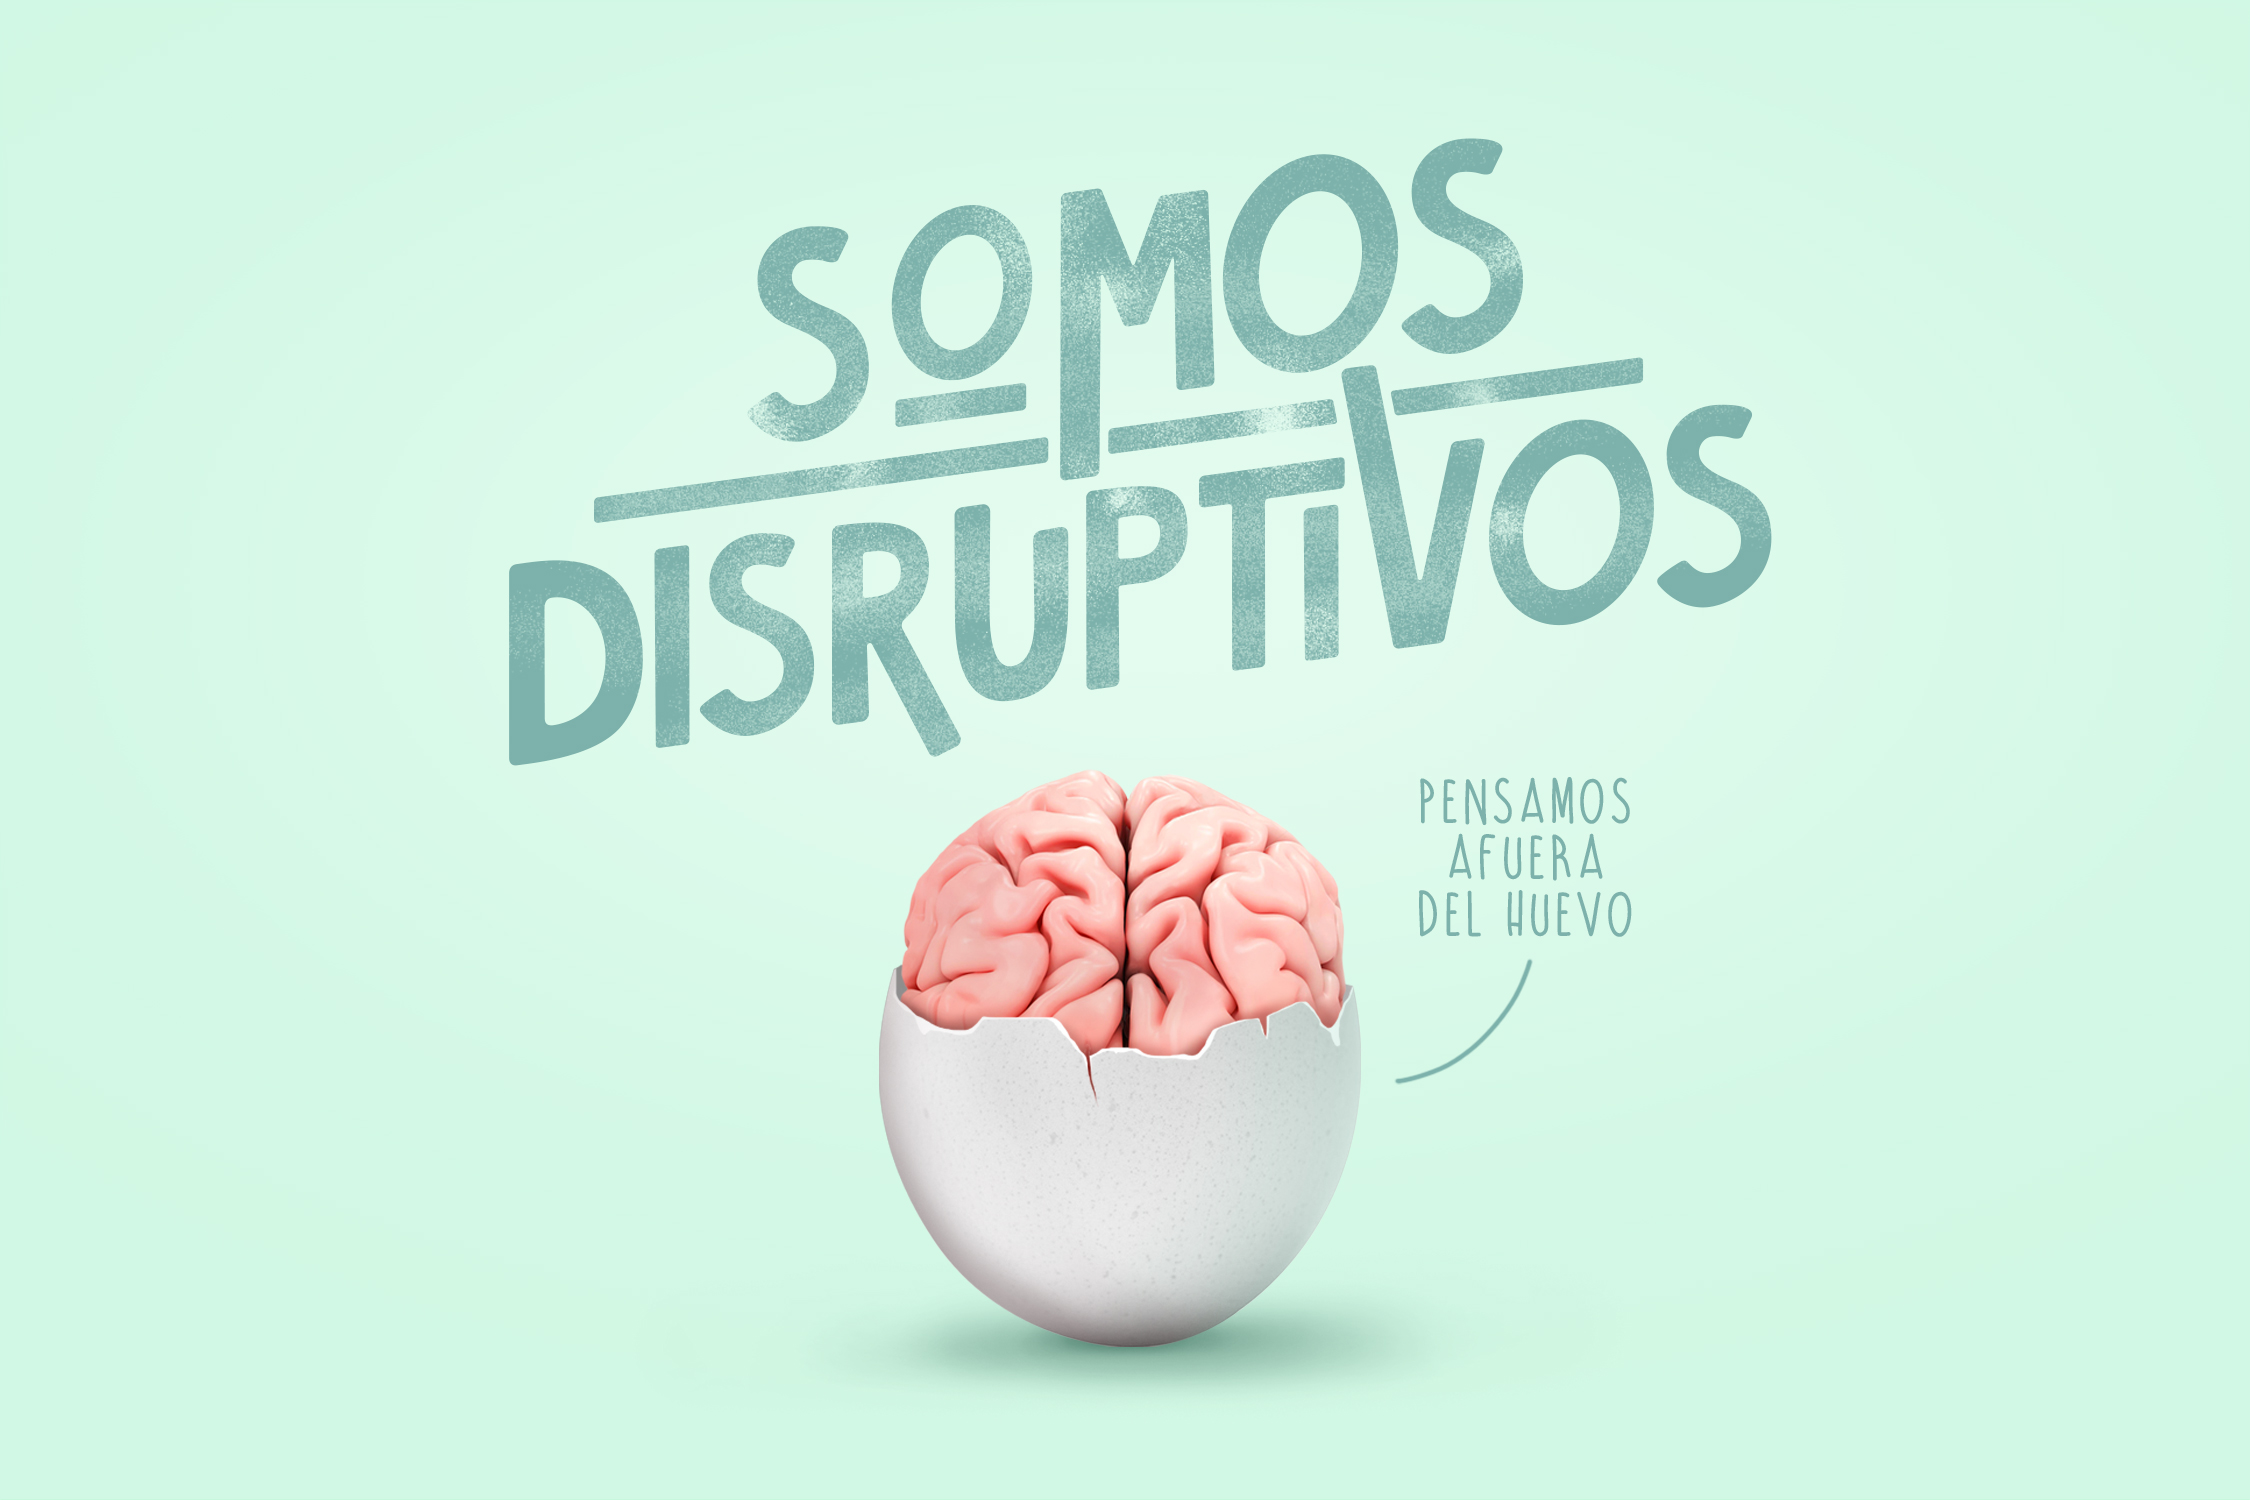 DISRUPTIVOS_BANNER_COLOR.jpg